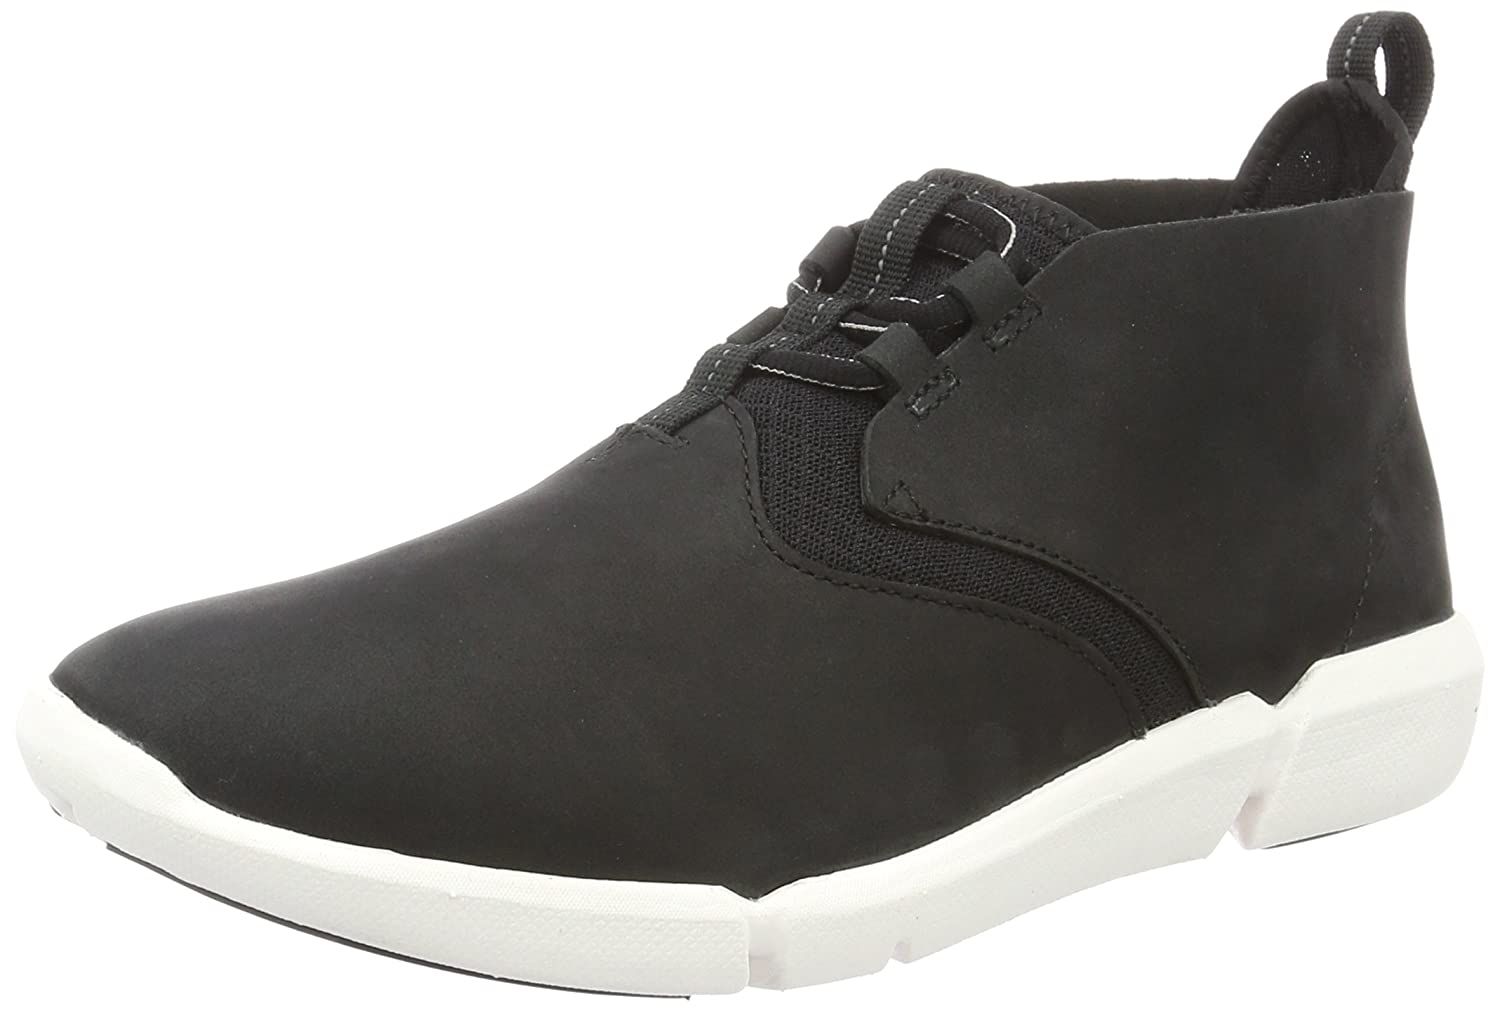 ec6d304a2 Clarks Men s Triken Active Low-Top Sneakers Black  Amazon.co.uk ...